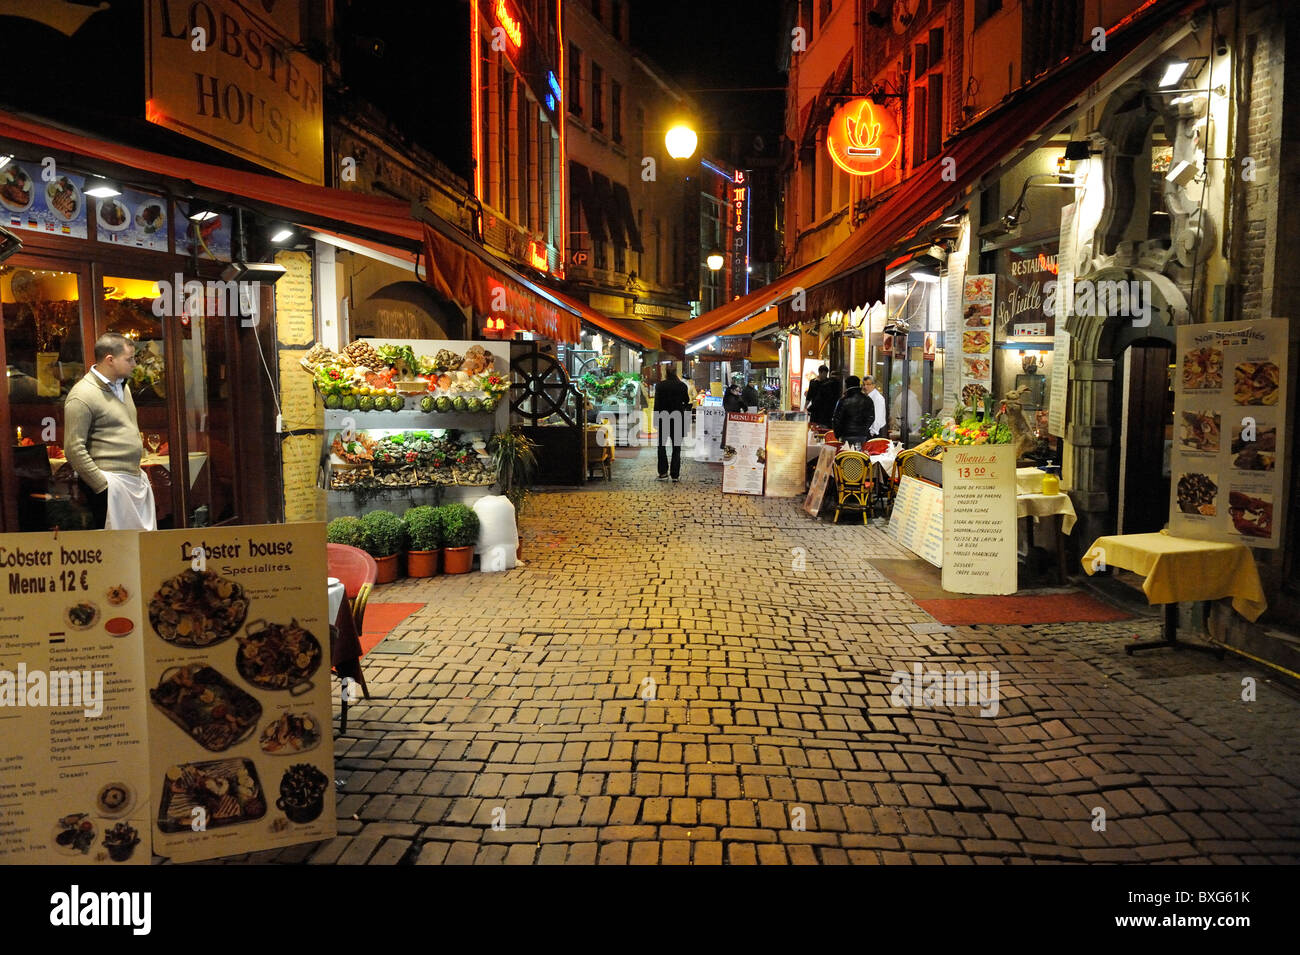 Cafes, restaurants and nightlife, Christmas period, Brussels, Belgium - Stock Image